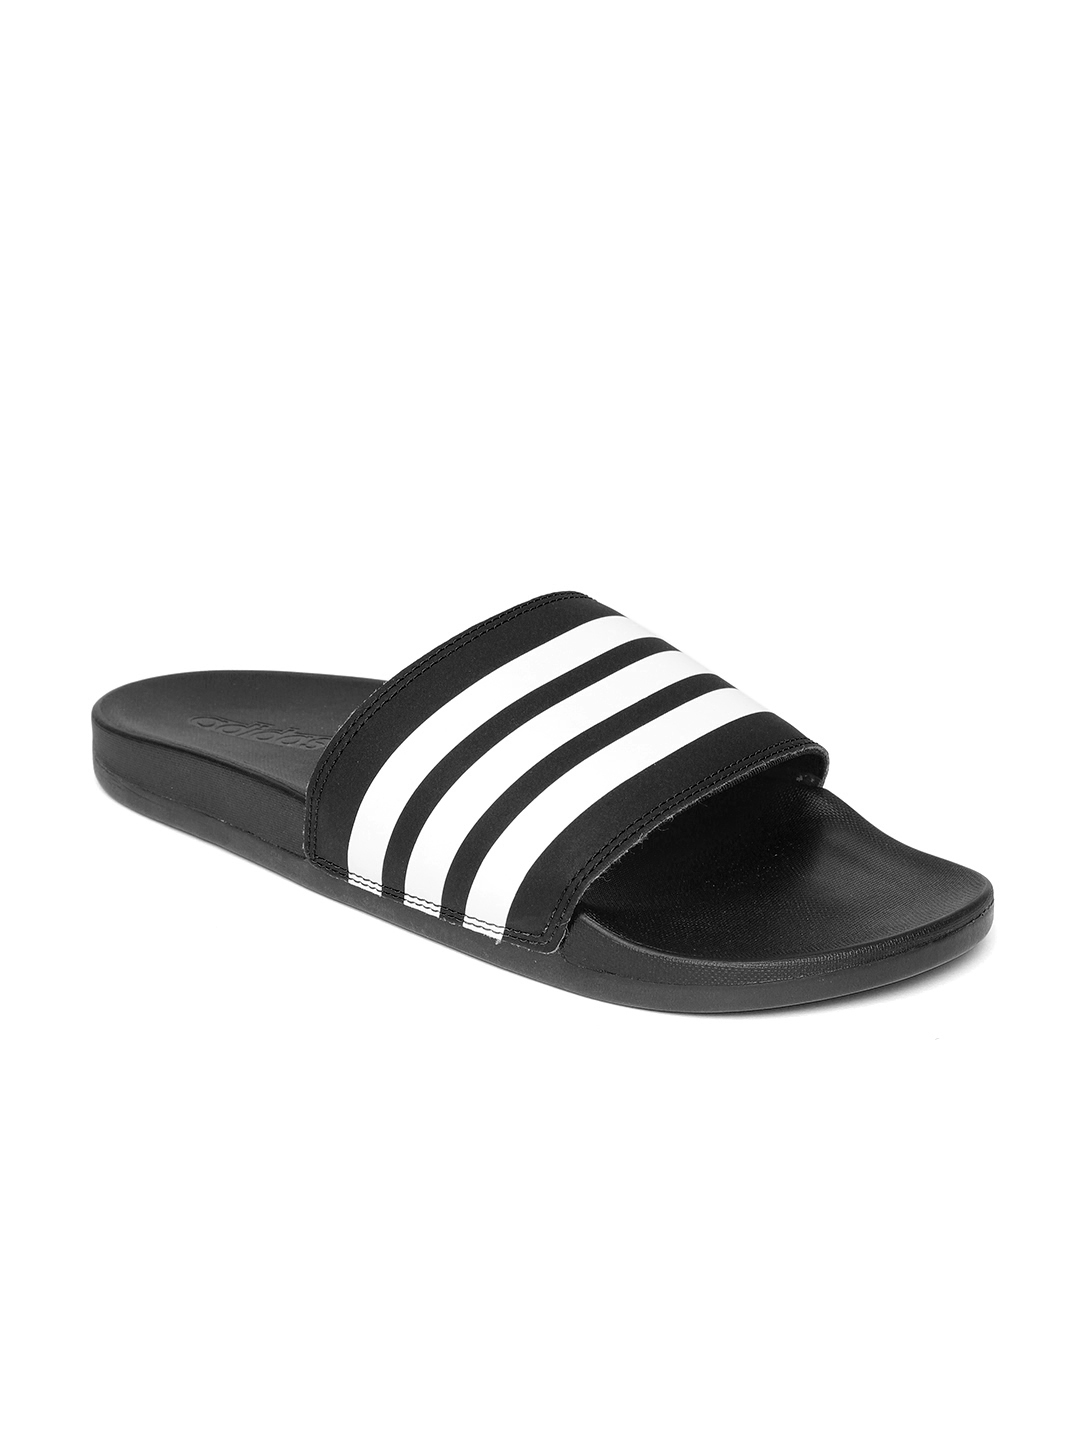 newest collection ca155 e1904 ADIDAS Women Black  White ADILETTE Comfort Striped Sliders